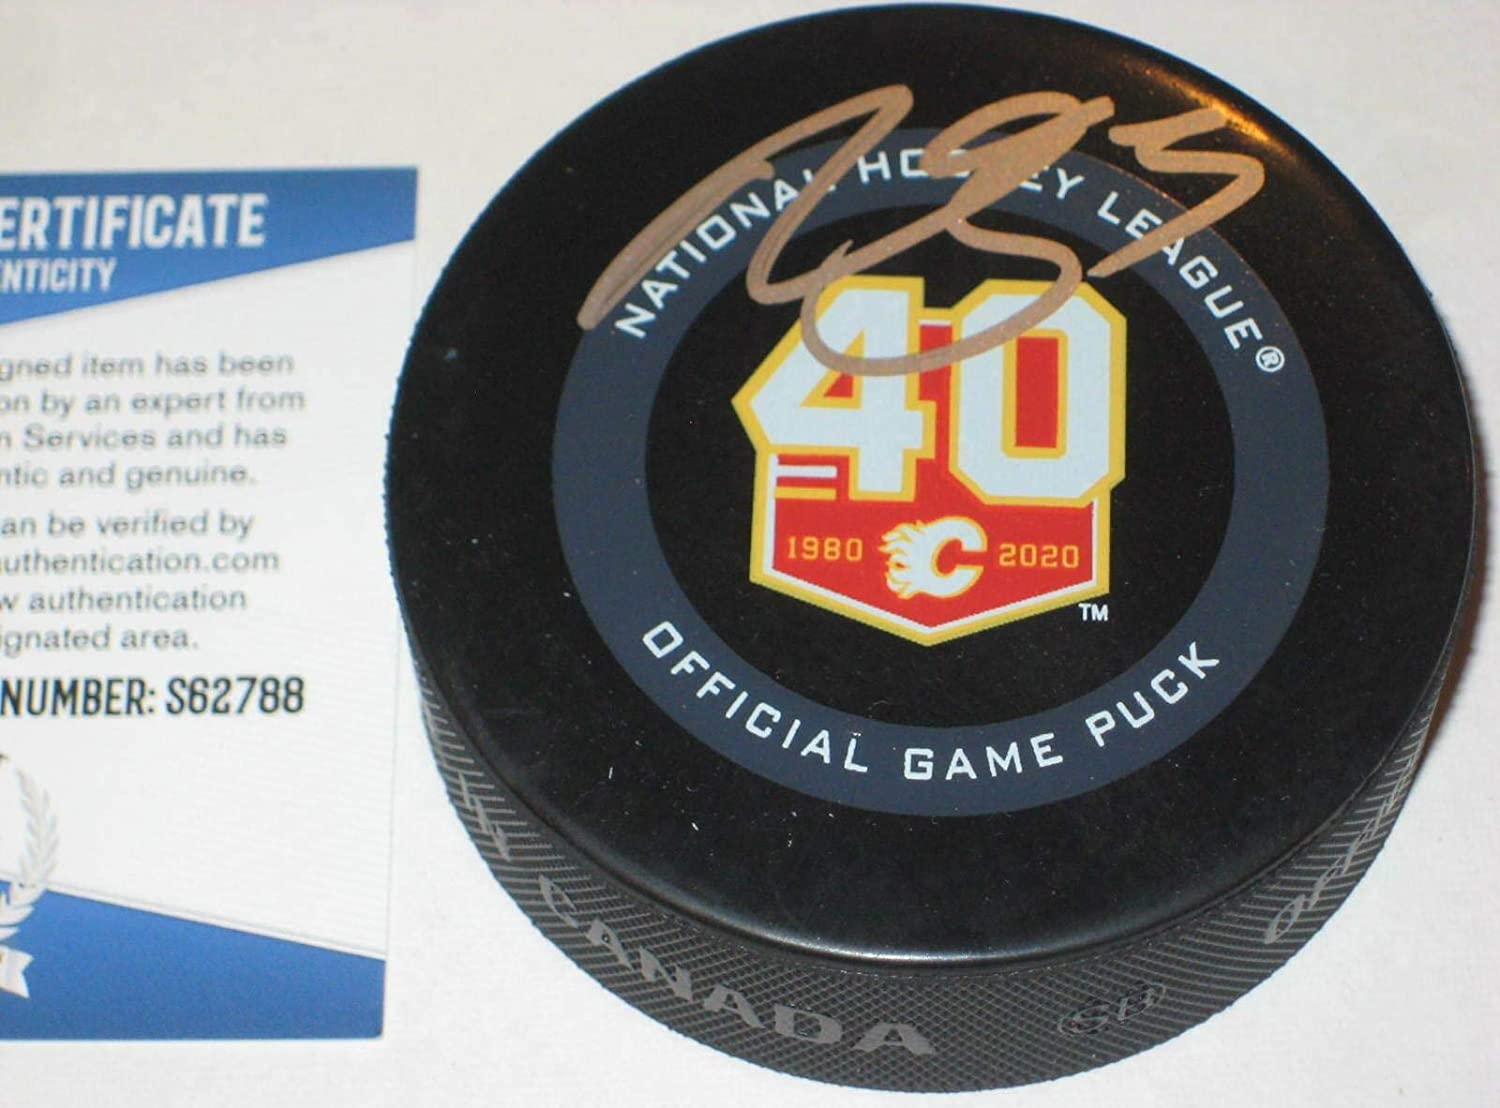 Mark Giordano Signed Puck - 40th ANN. Official w Beckett COA - Beckett Authentication - Autographed NHL Pucks